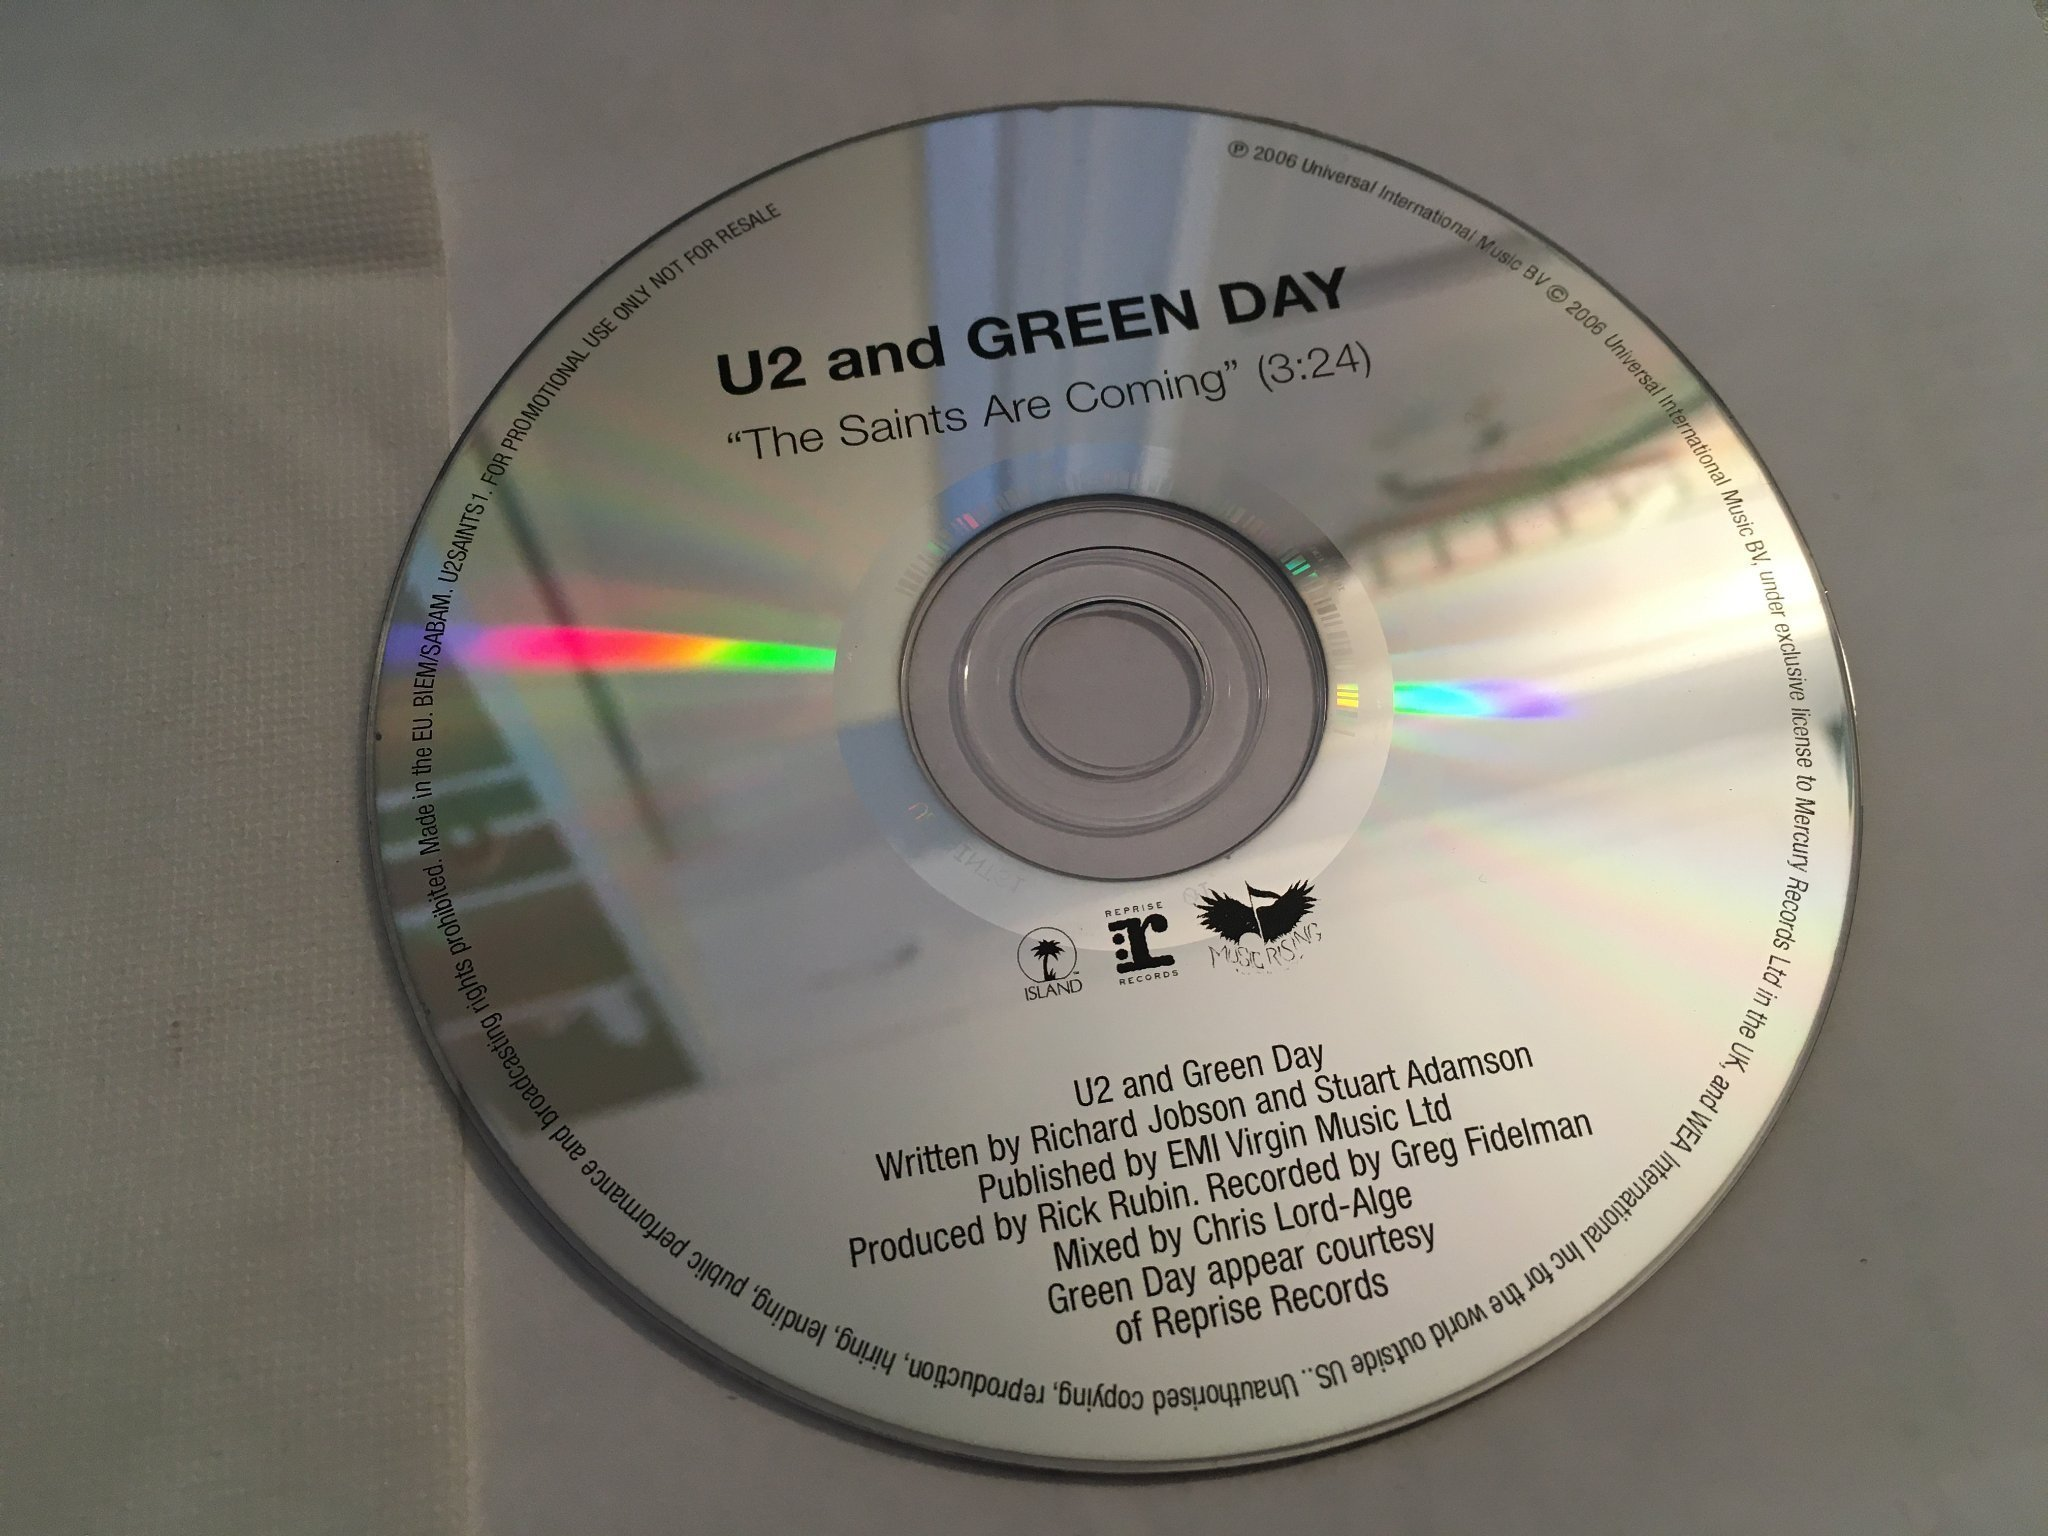 Green Day & U2 - The Saints Are Coming - CD-Singel Promo